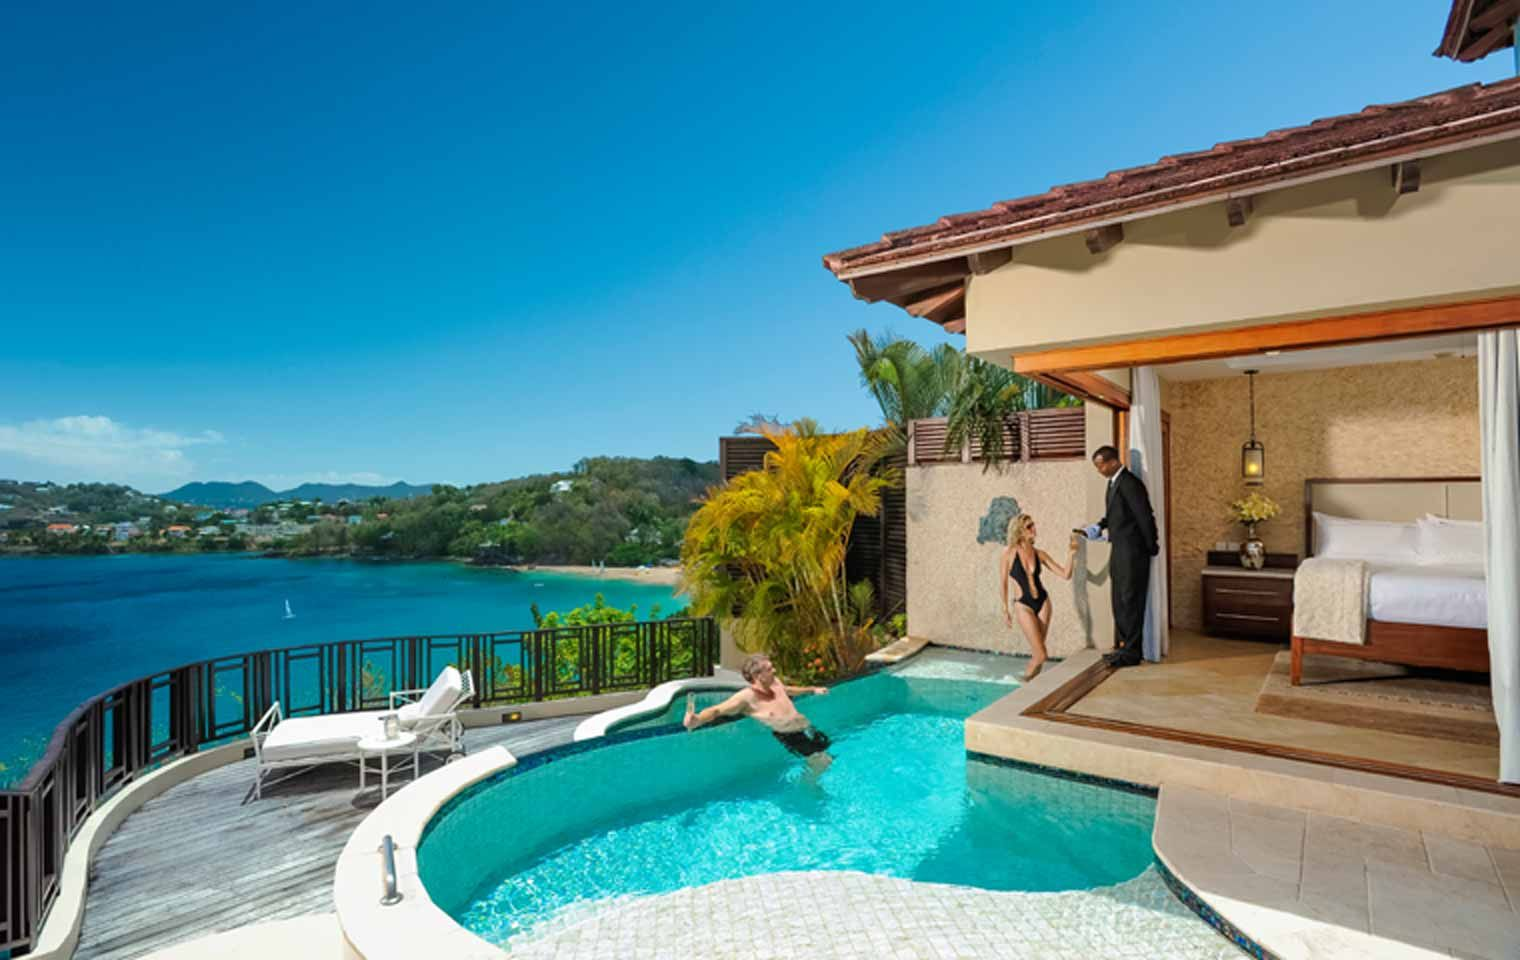 18 Best Caribbean All-Inclusive Resorts for Families 2020